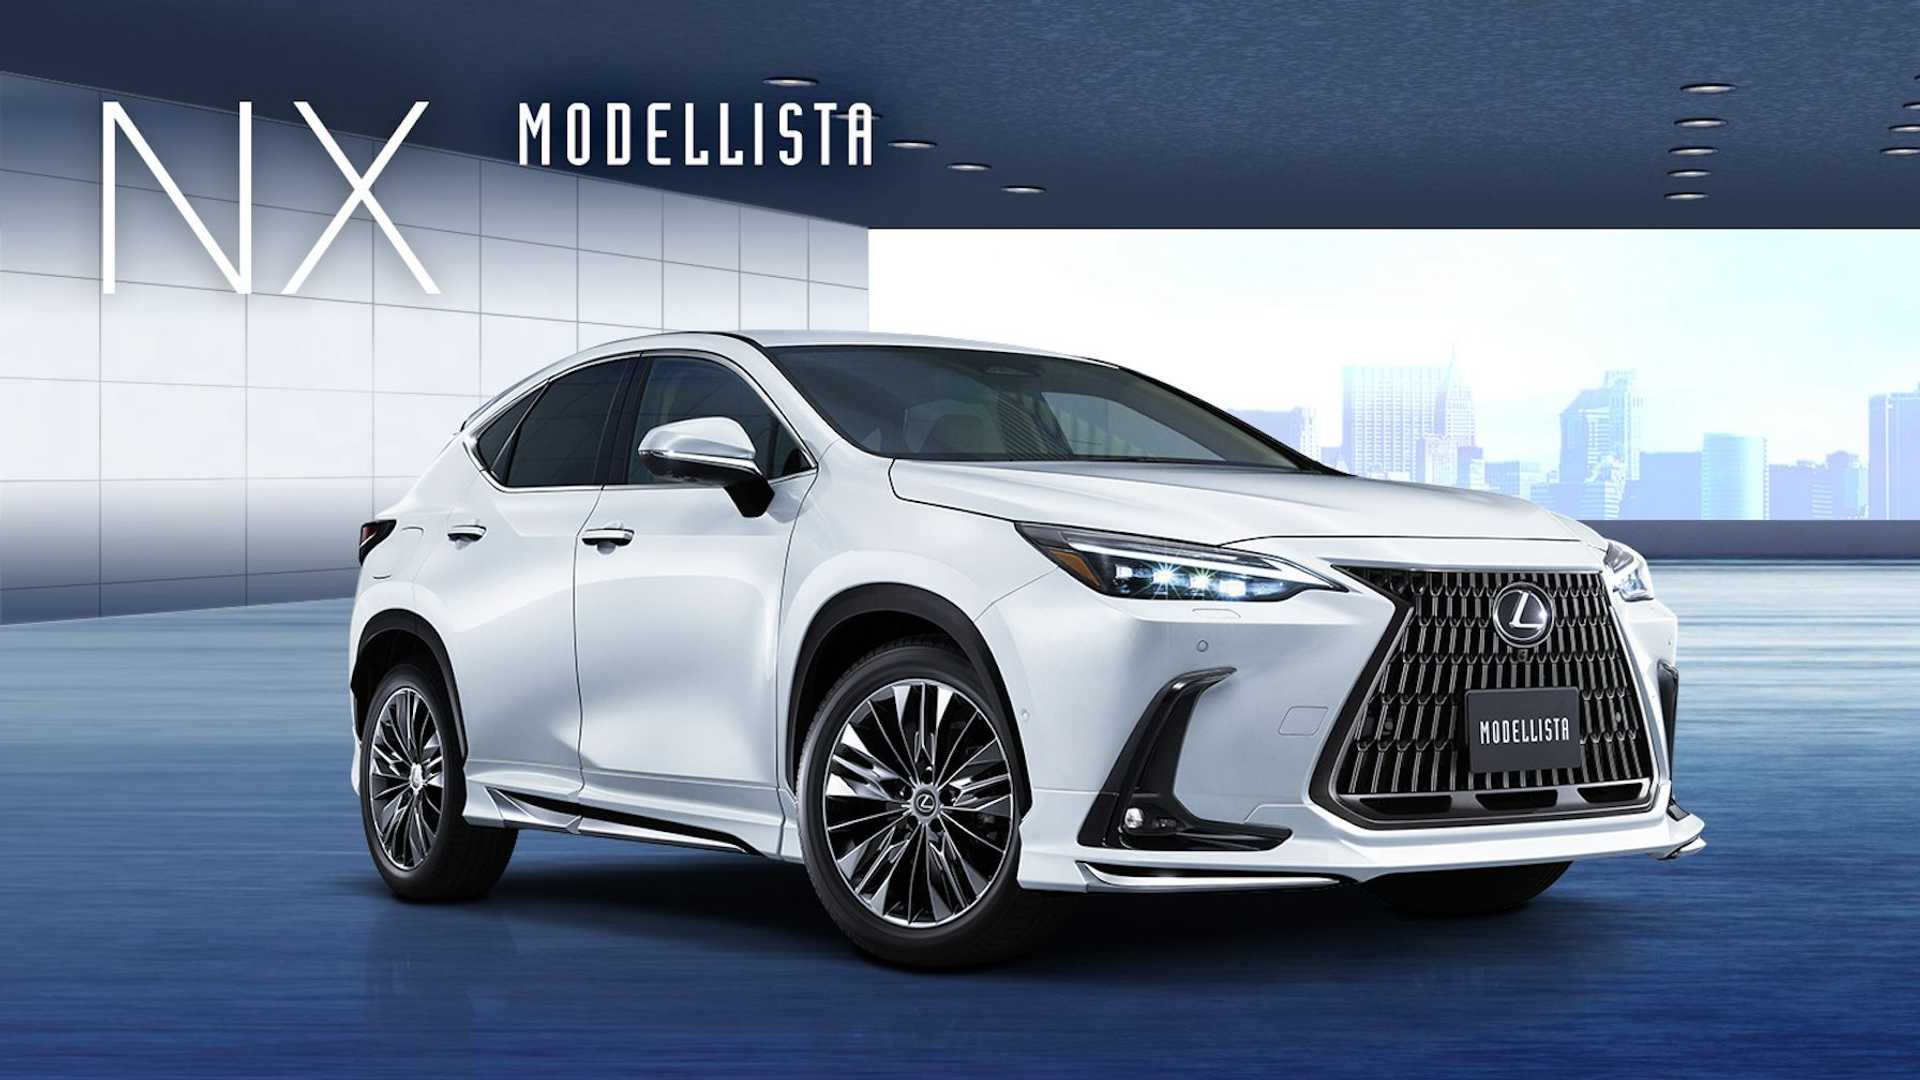 Toyota Racing Development (TRD) launched its accessories for the new Lexus NX a short while ago, and now, a body kit from Modellista is also available to purchase at a refreshingly low price. Then again, it's largely just plastic.